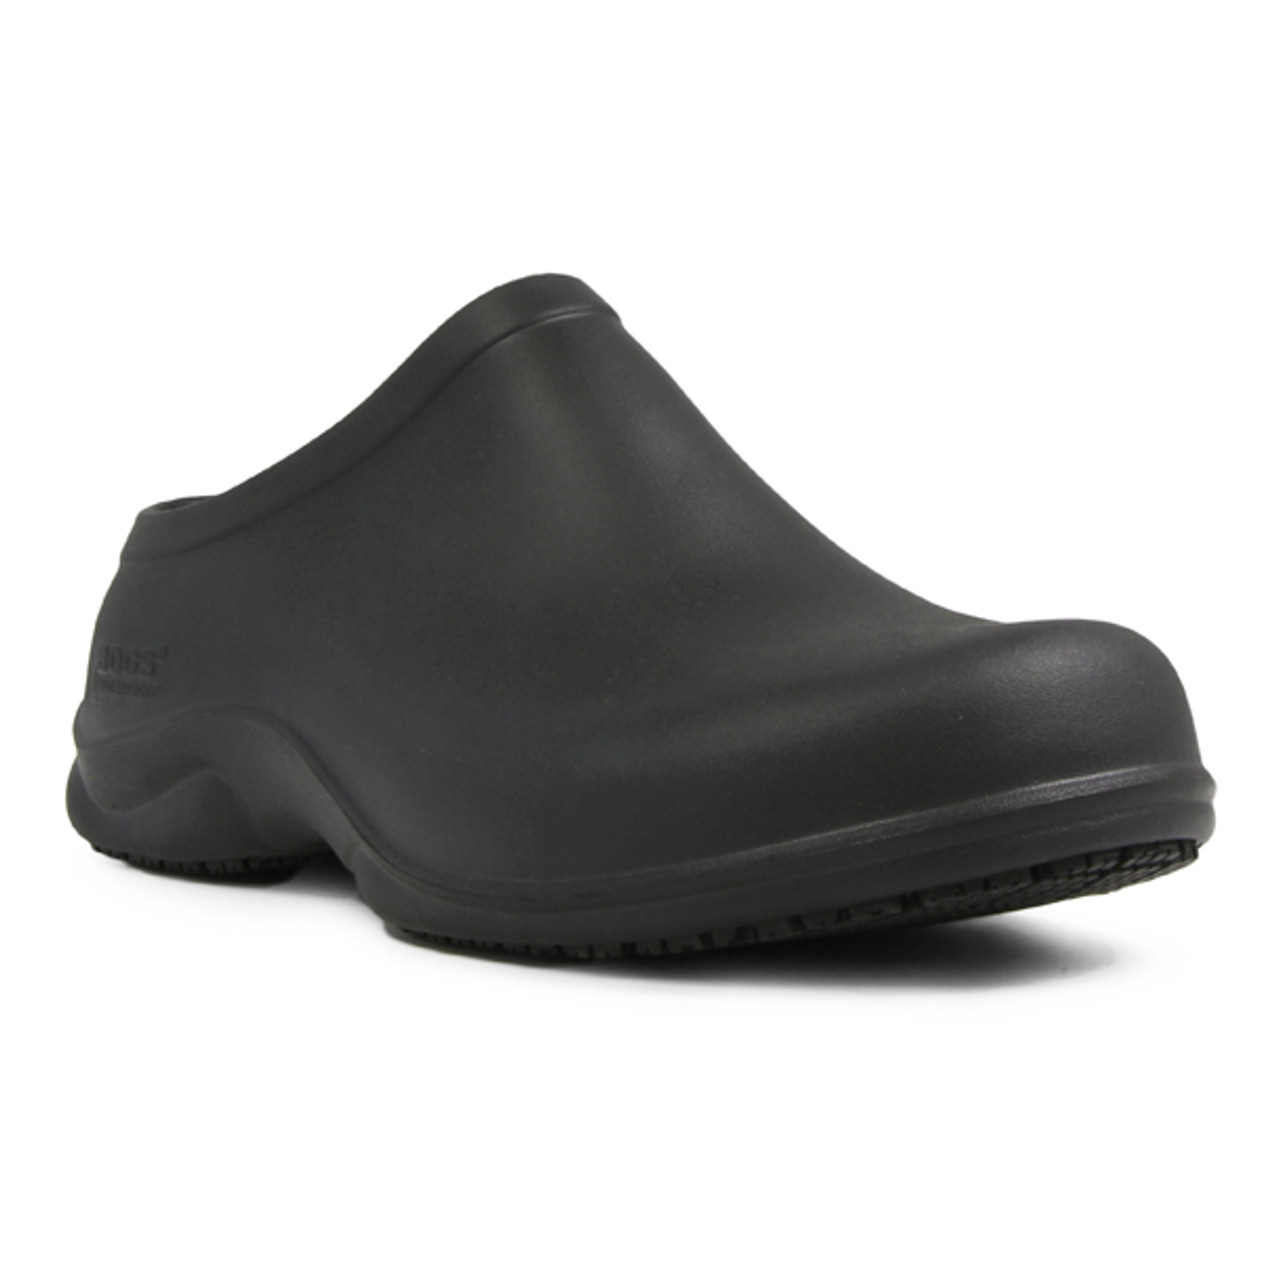 3ea0b82fc41 BOGS Clogs - Black Stewart Waterproof Rubber Clogs For Women - Koolstuff  Australia